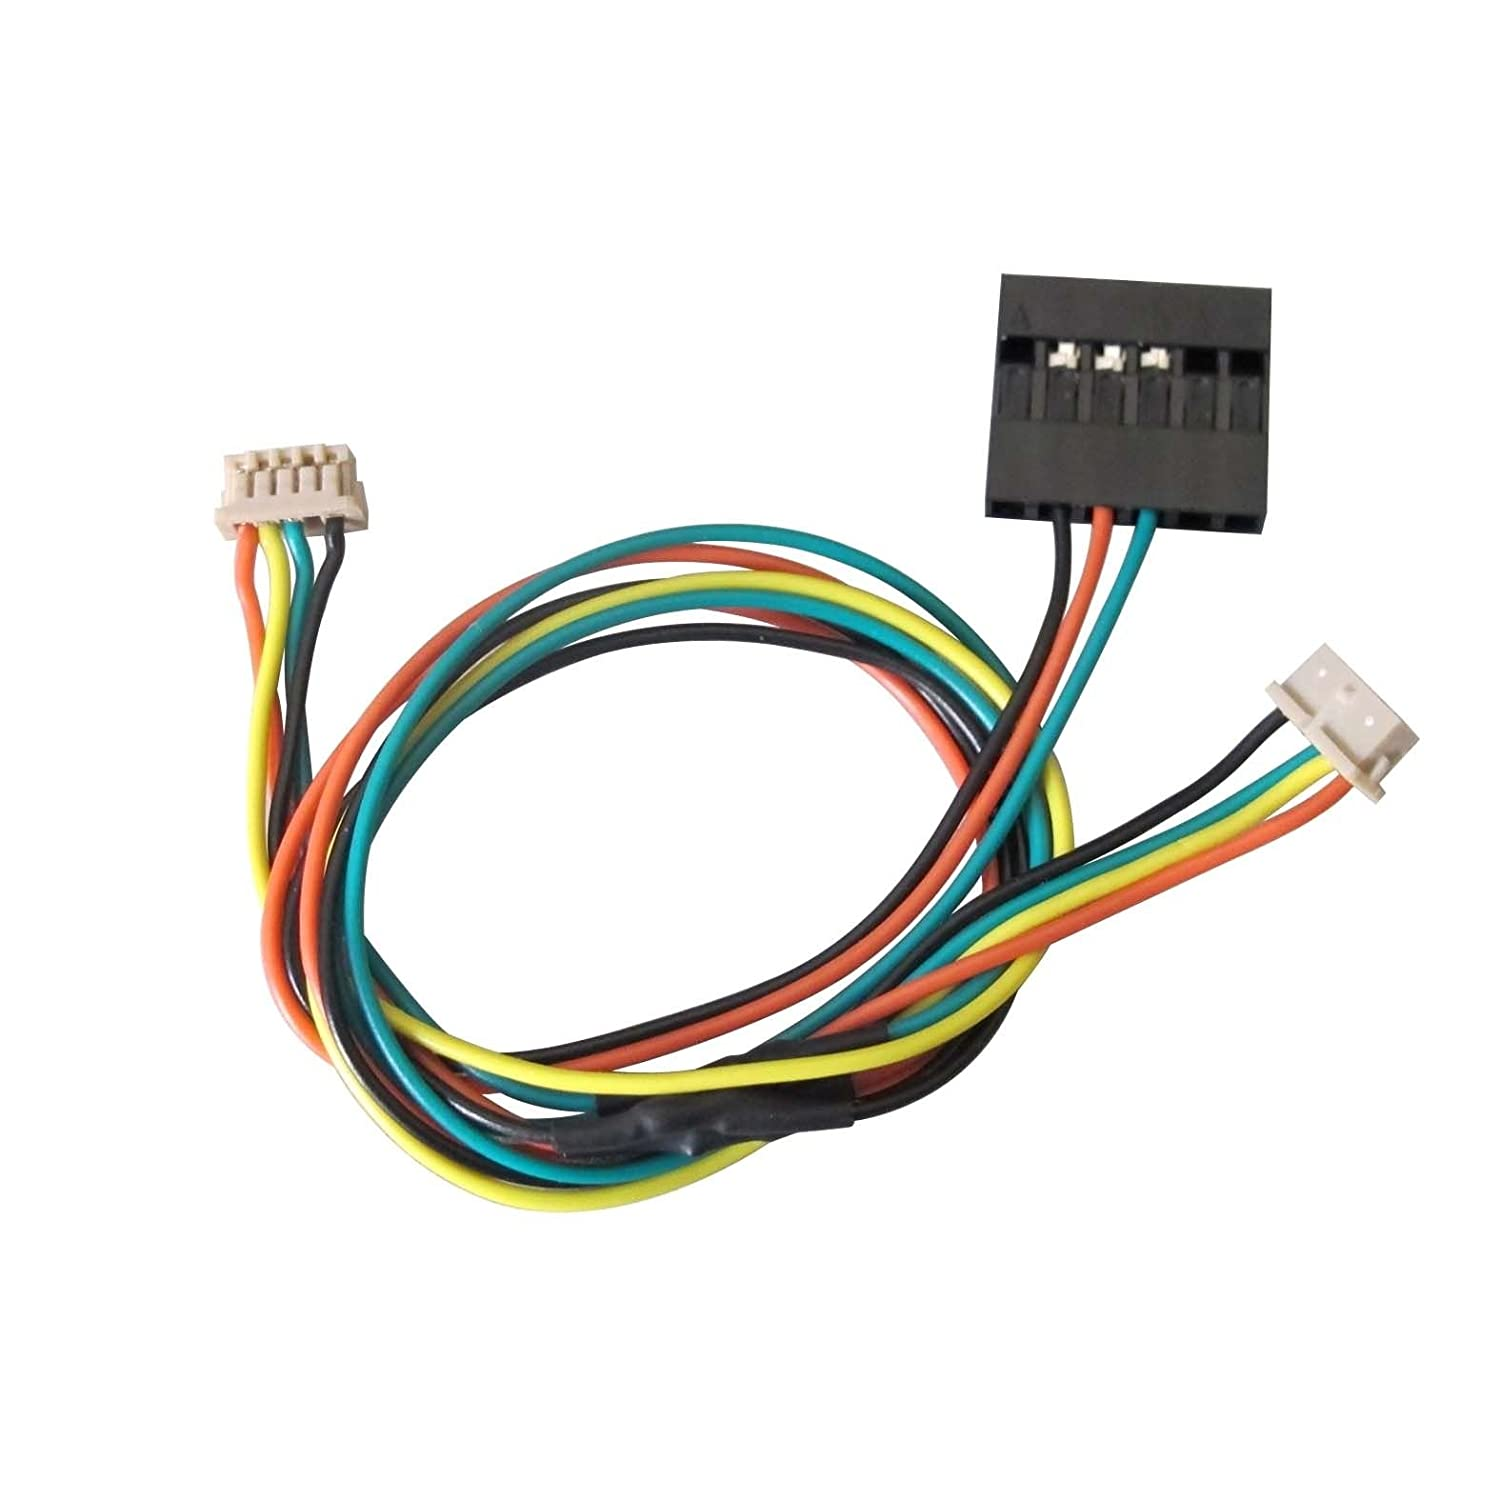 ShareGoo 3DR Telemetry OSD Y Style Connection Cable Wire for APM2.6 APM2.7  APM2.8 FC Flight Controller+1 Strap: Amazon.ca: Electronics